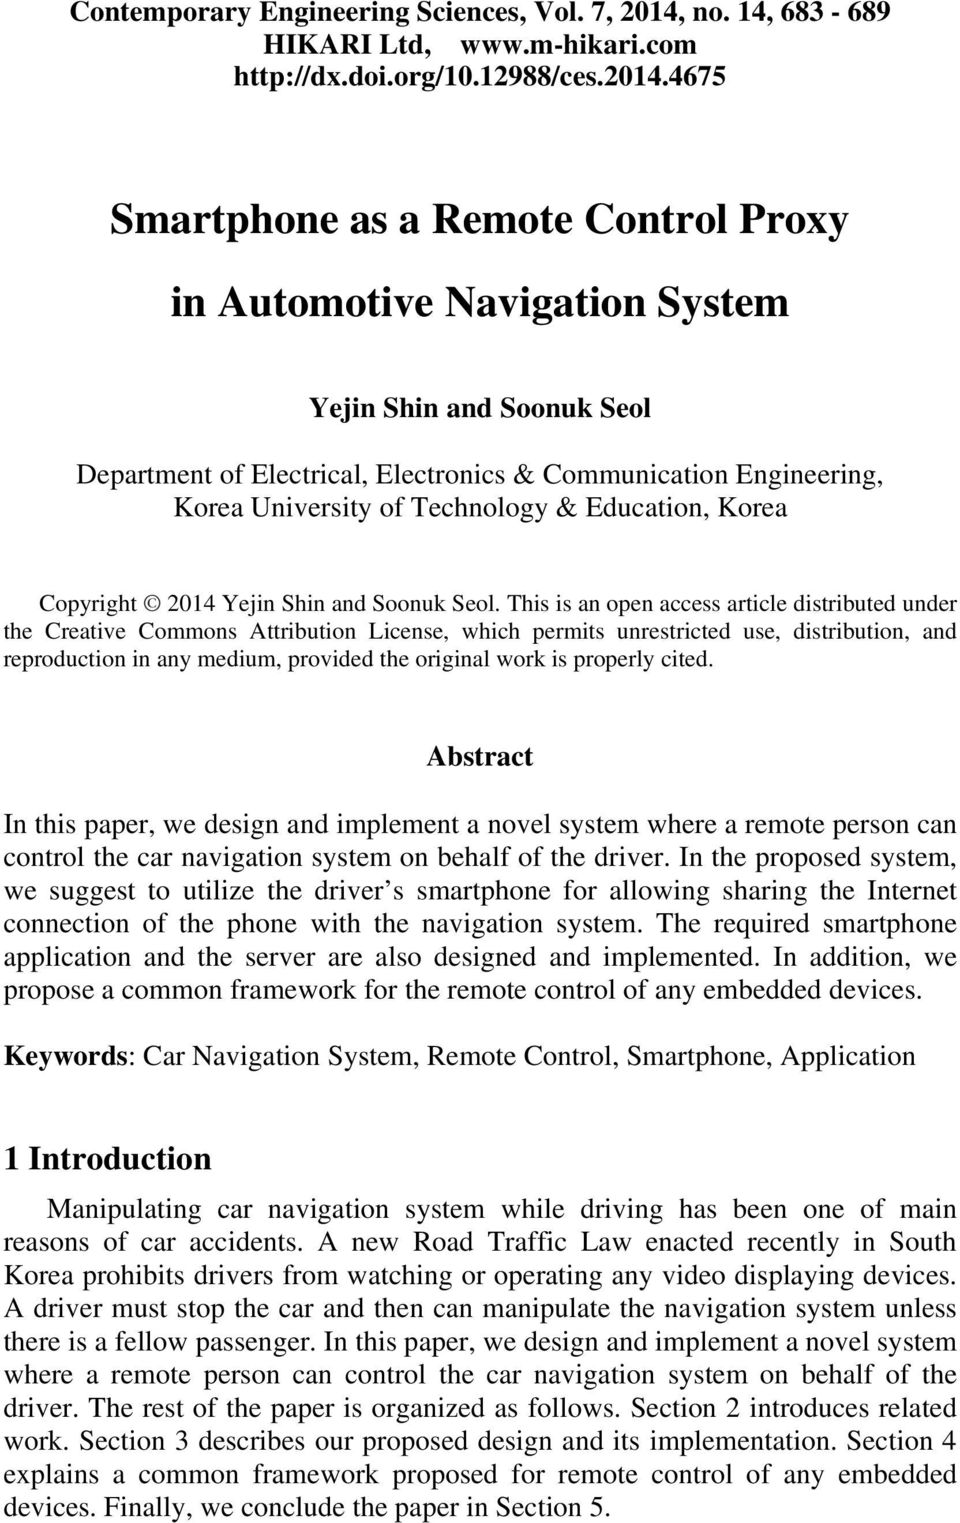 4675 Smartphone as a Remote Control Proxy in Automotive Navigation System Yejin Shin and Soonuk Seol Department of Electrical, Electronics & Communication Engineering, Korea University of Technology